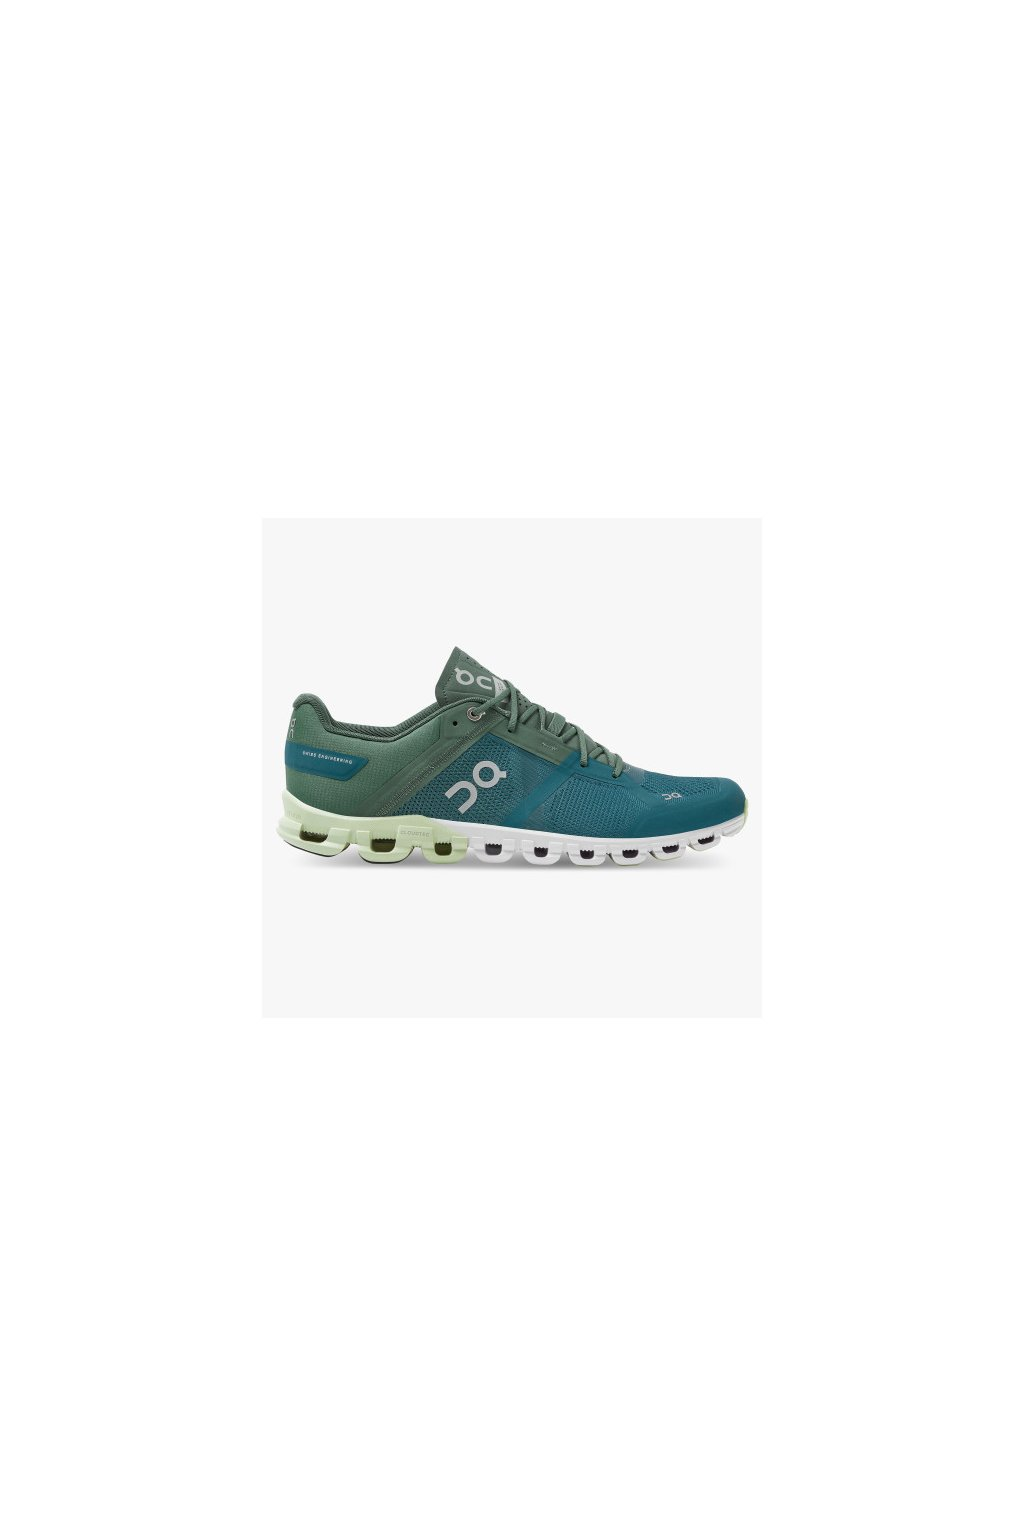 cloudflow 2 fw20 sea petrol m g1 (1)